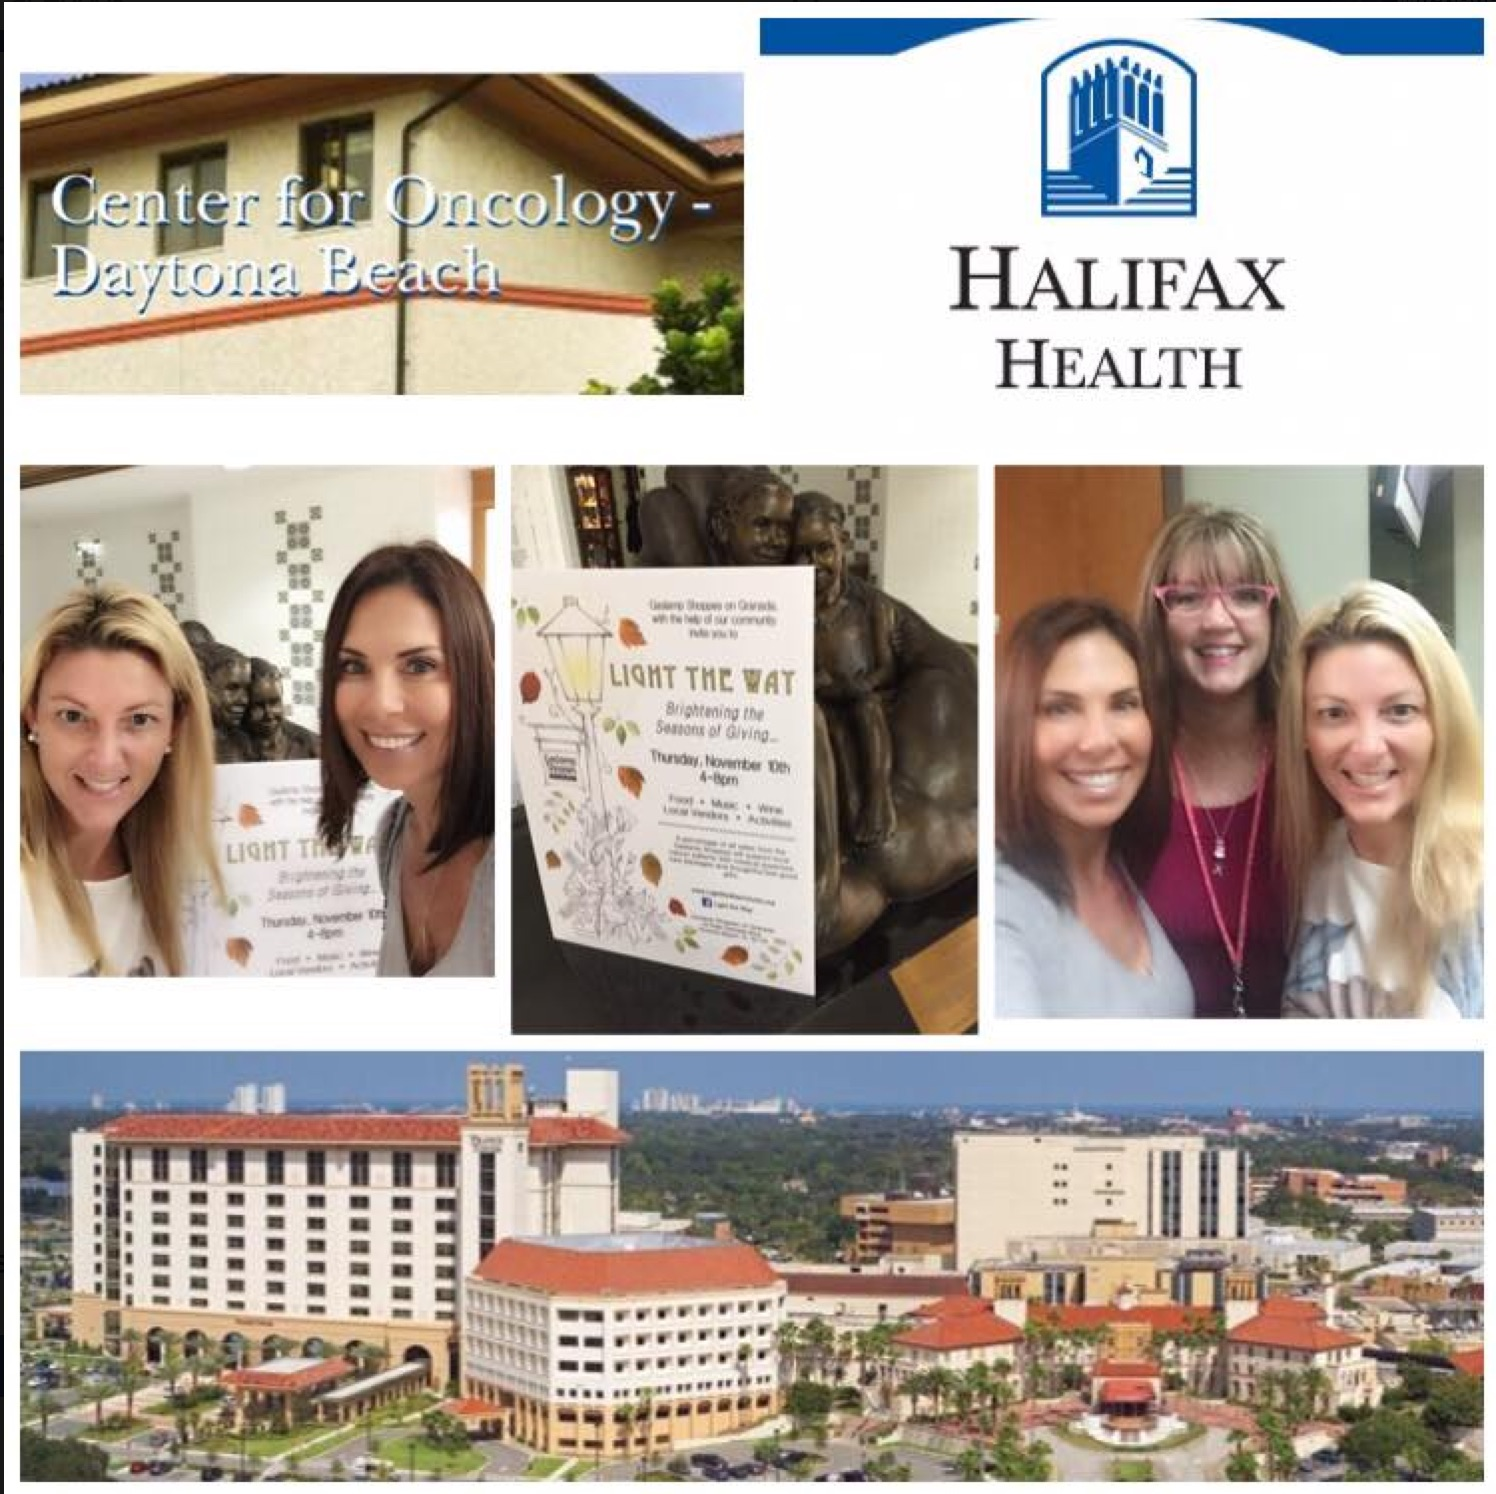 Introduced LTW to oncology medical staff at Halifax. Getting the word out, daily! ✨Thank you, Jennifer for making this happen! Lighting the way, together✨